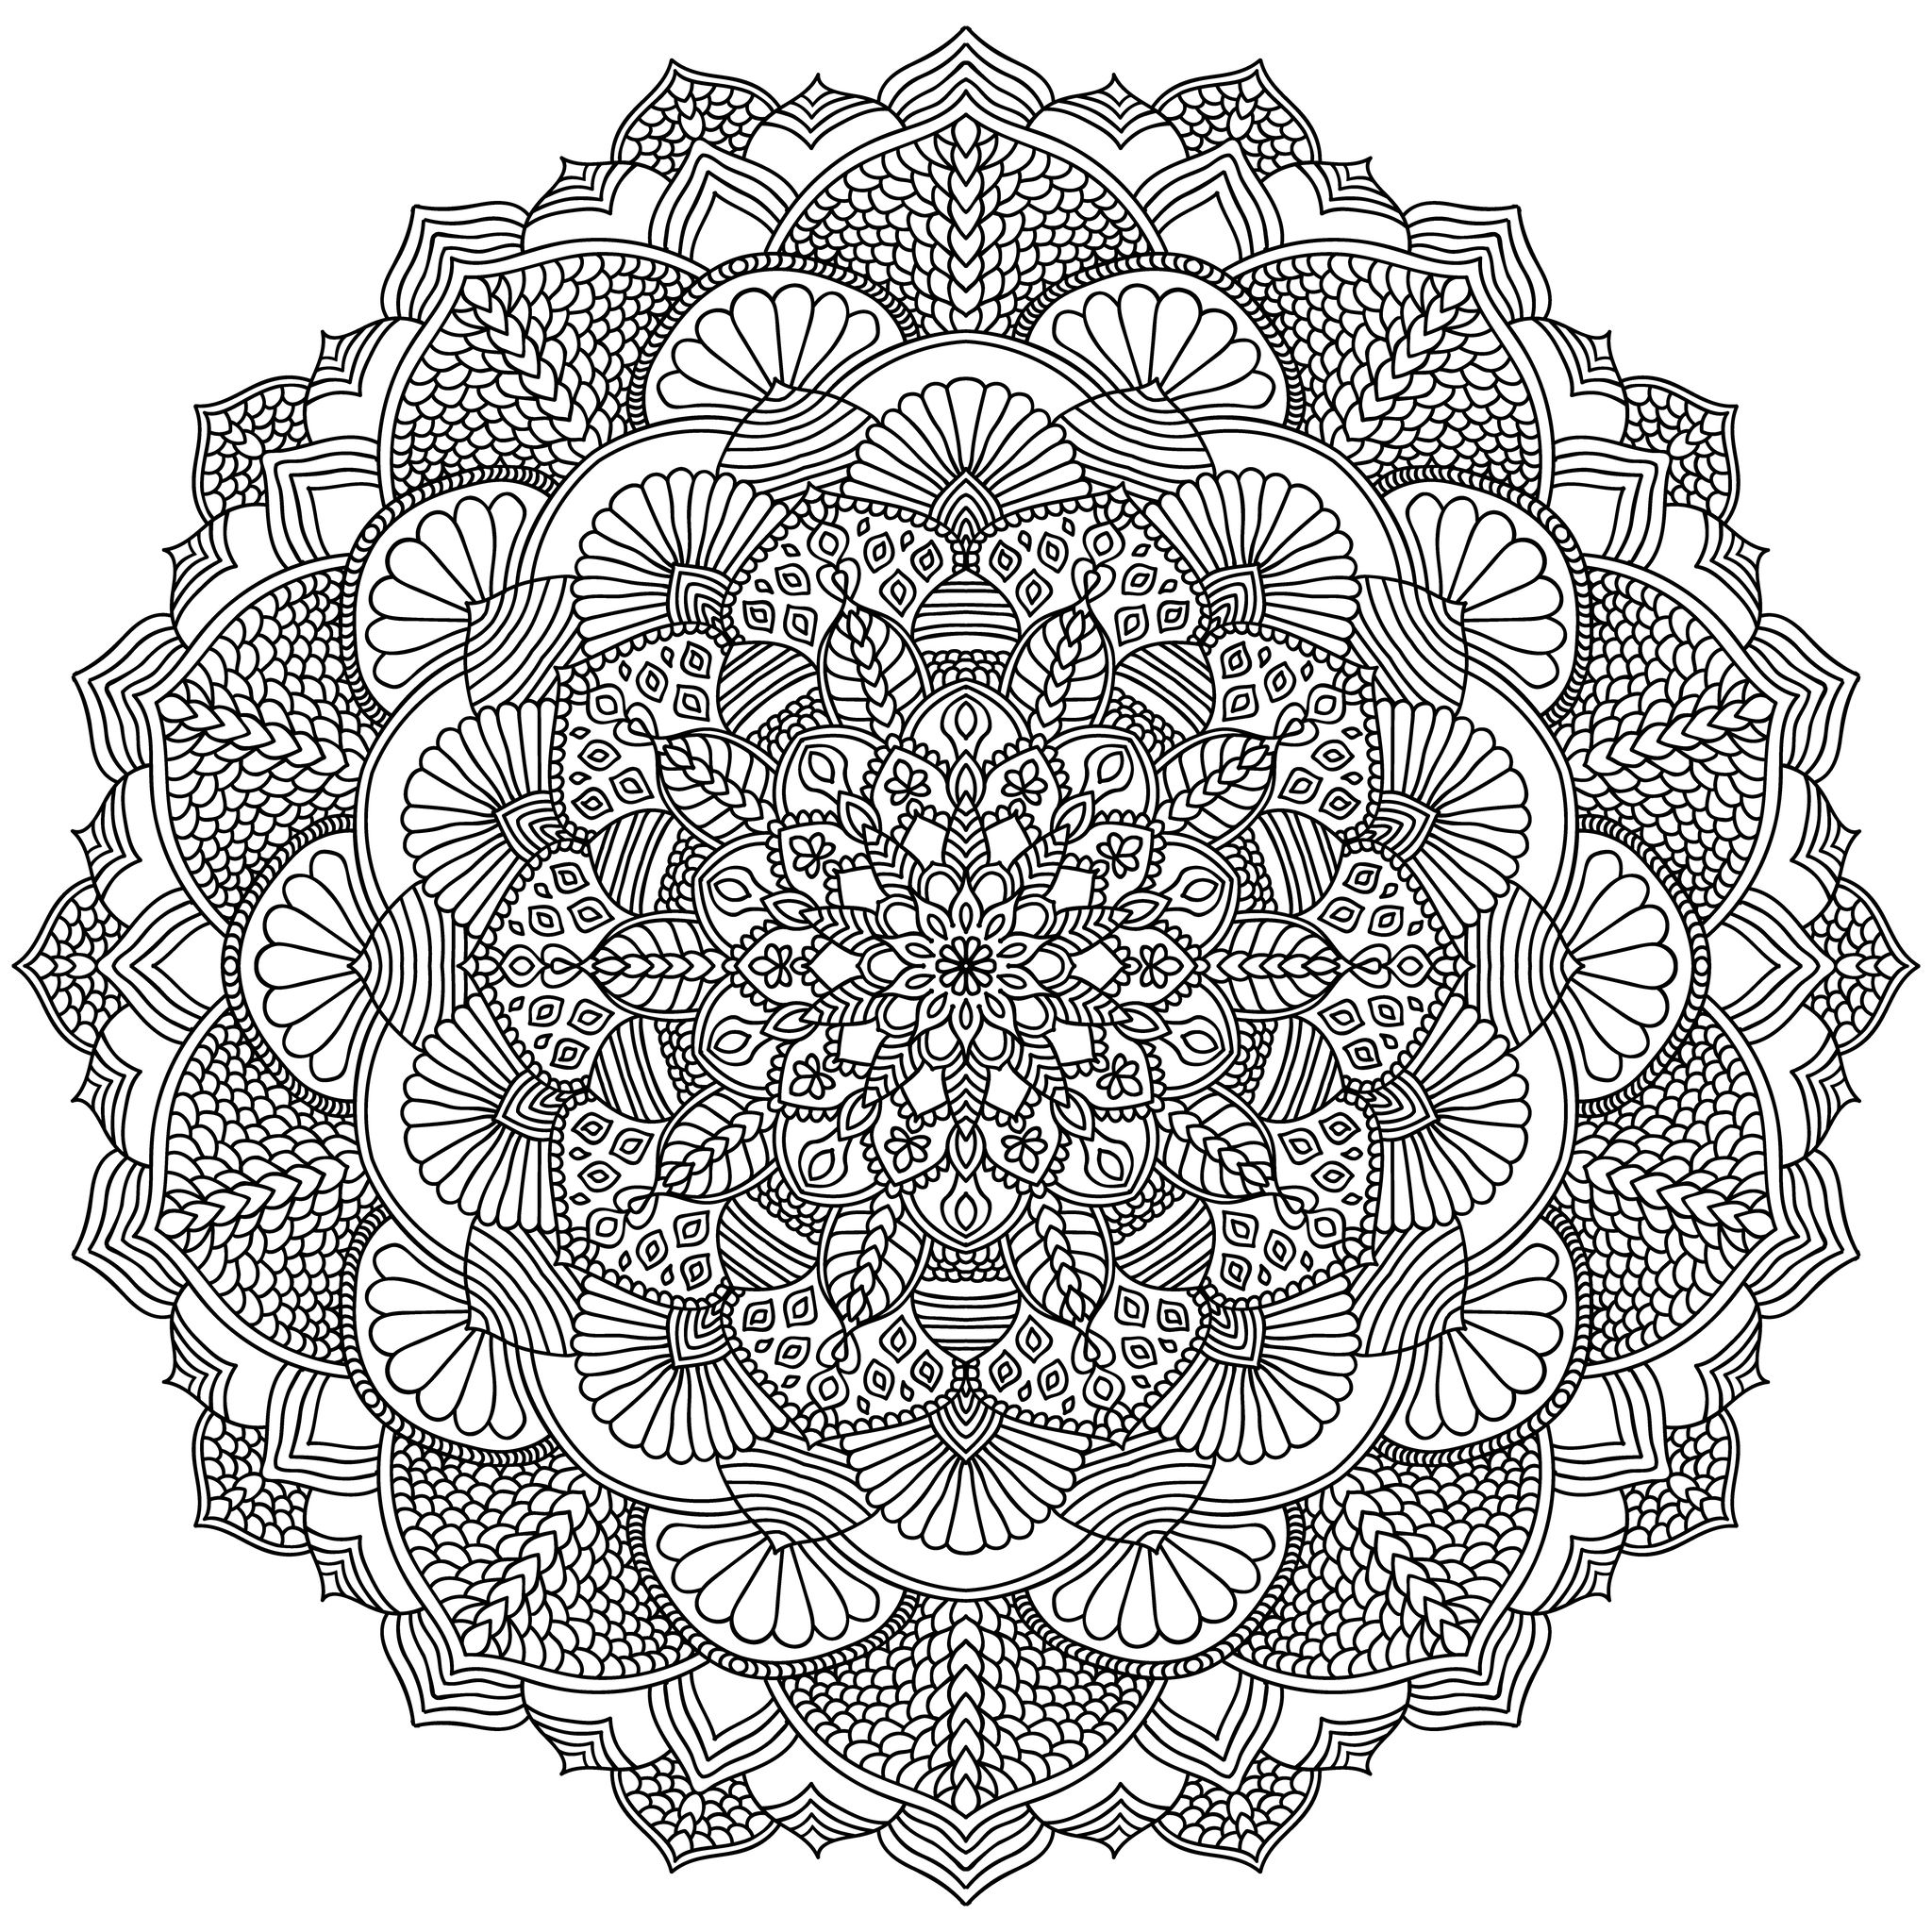 Mandalas are Buddhist devotional images often deemed a diagram or symbol of an ideal universe. Do whatever it takes to get rid of any distractions that may interfere with your coloring.